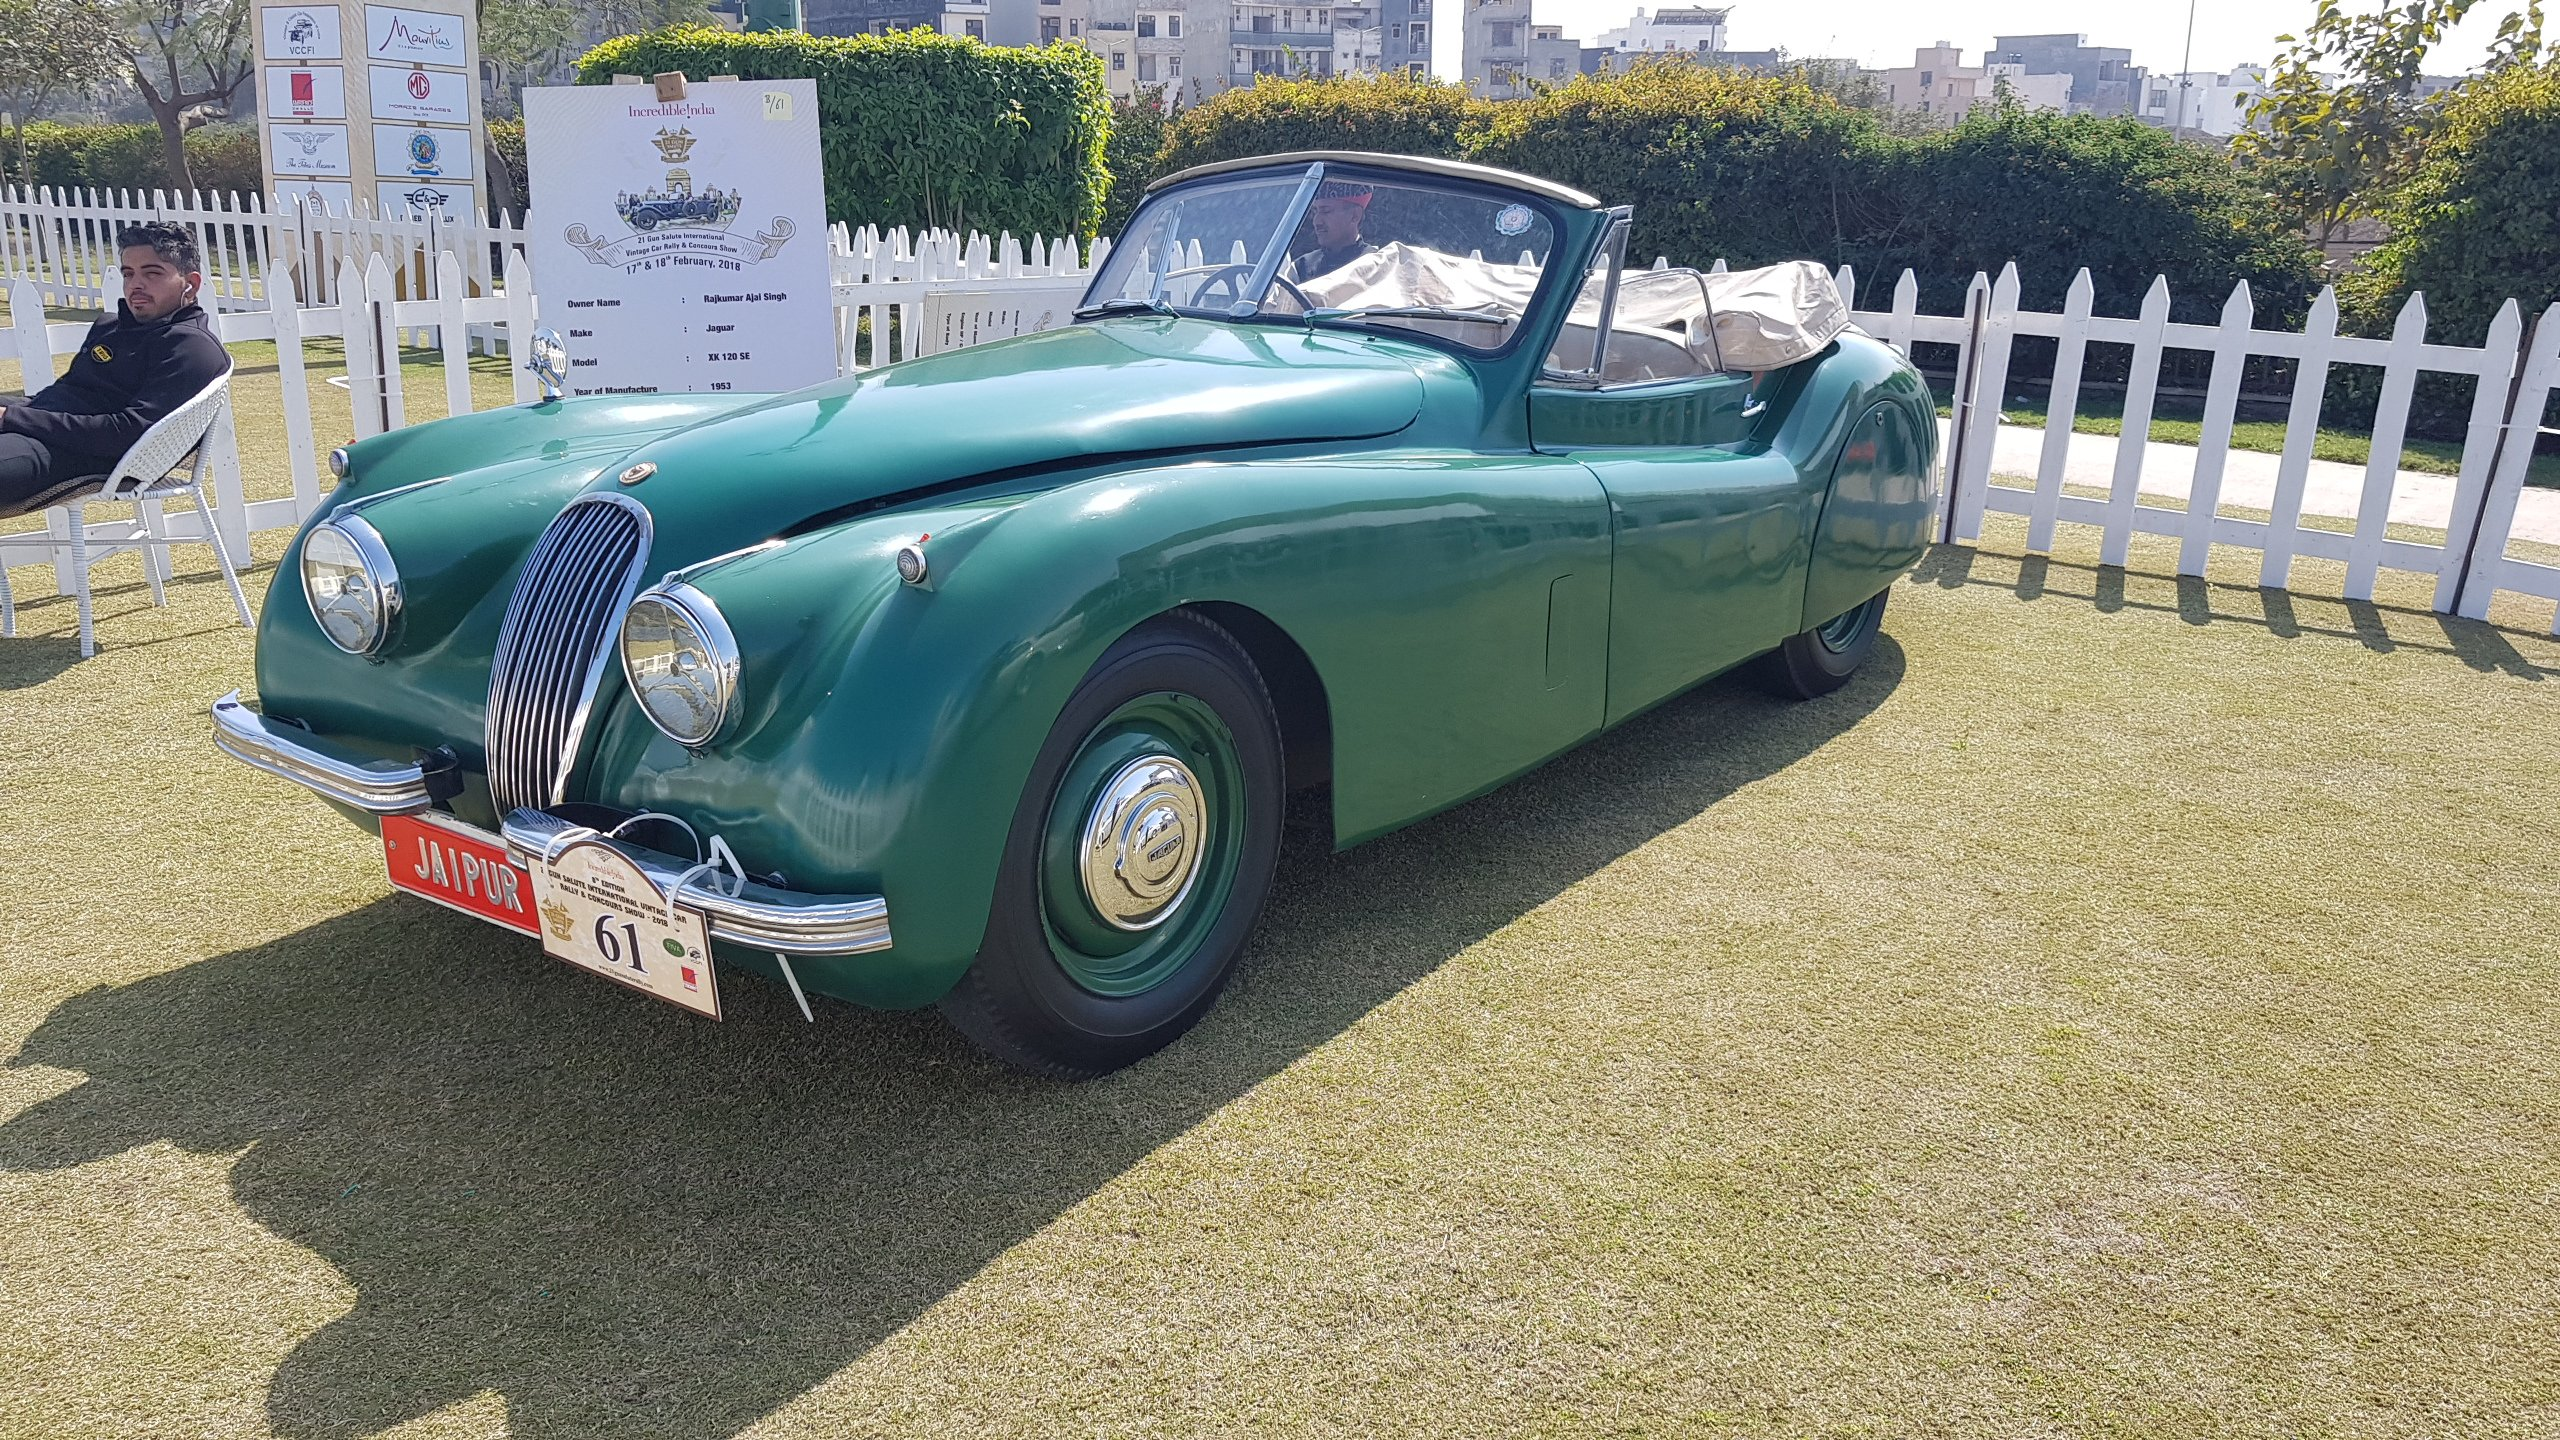 My visit to the vintage car rally organized by \'21 Guns Salute ...